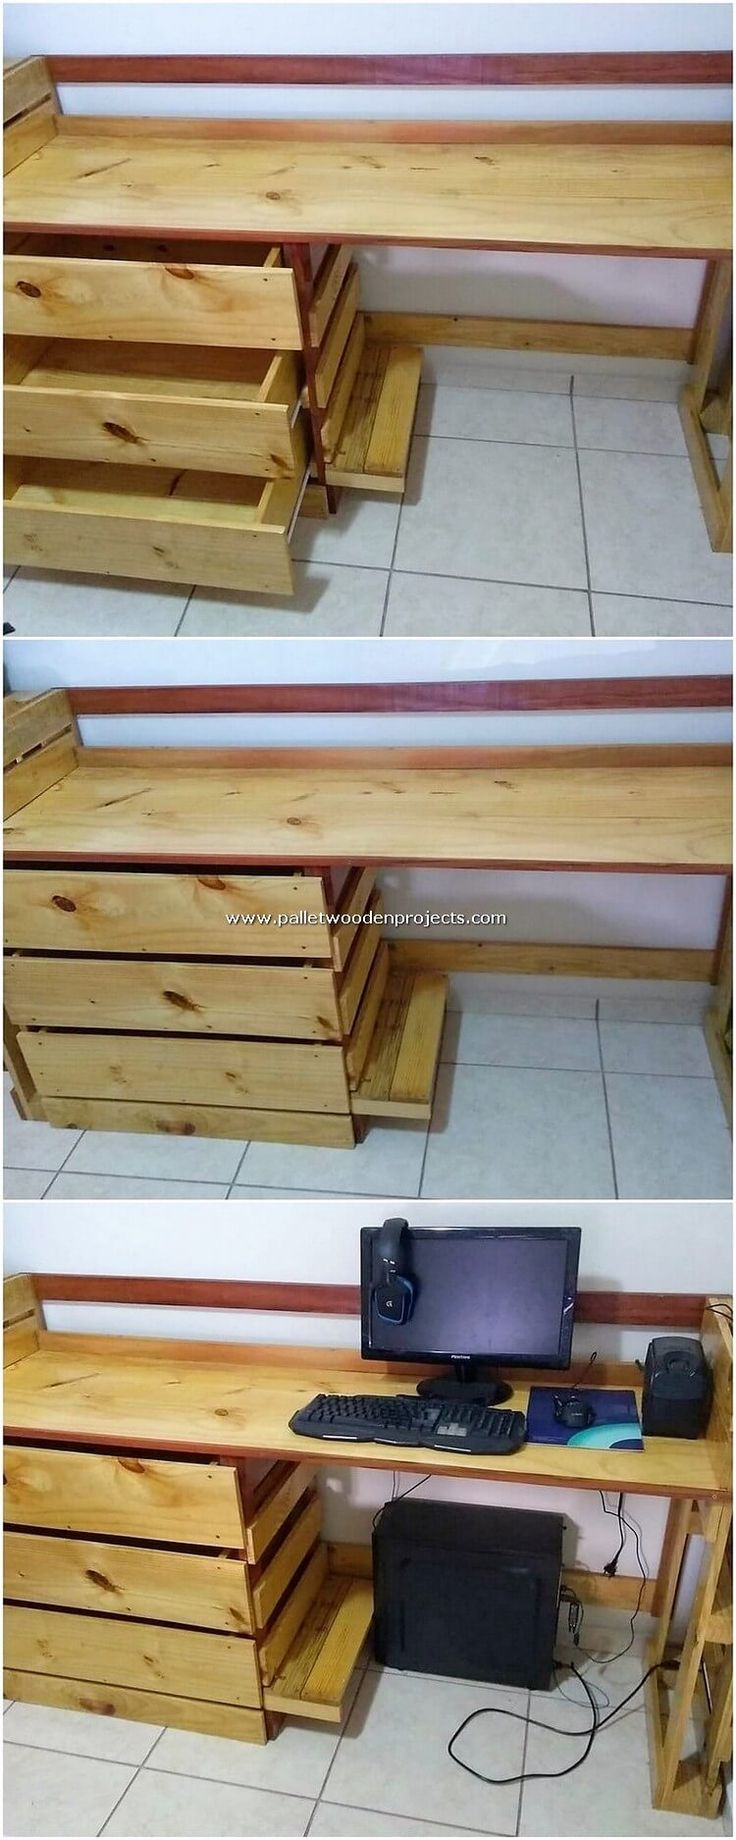 Do It Yourself Furniture Ideas: Incredible Do It Yourself Pallet Projects And Plans In